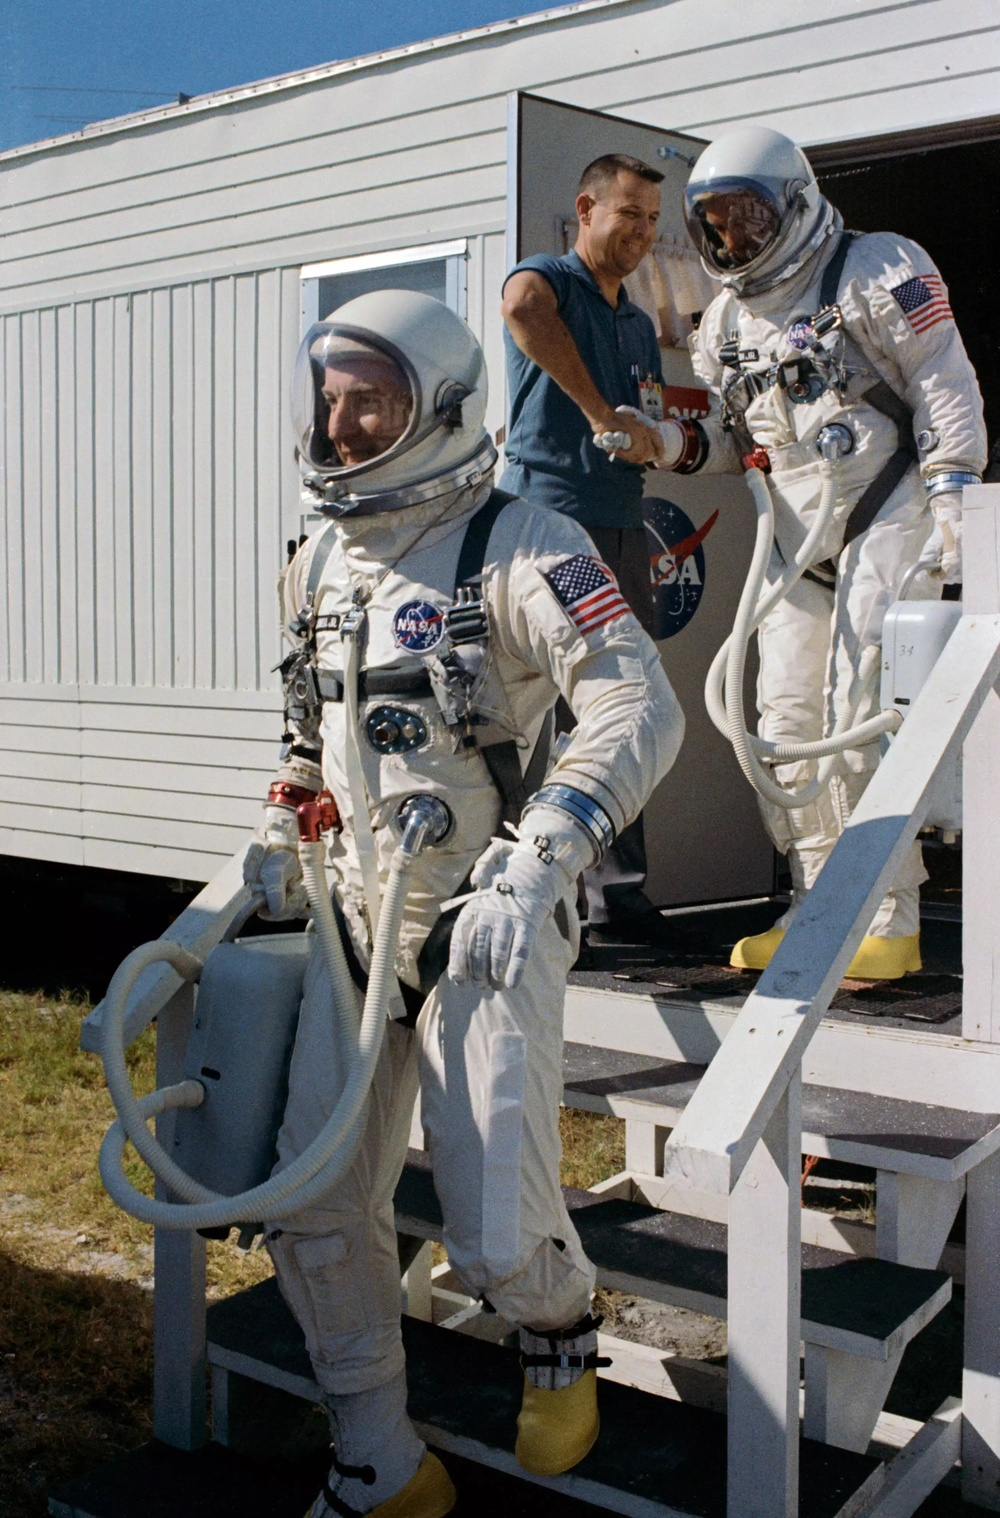 Jim Lovell (left) and Buzz Aldrin (right) on the way to the Titan II GLV rocket. Source: Wikipedia